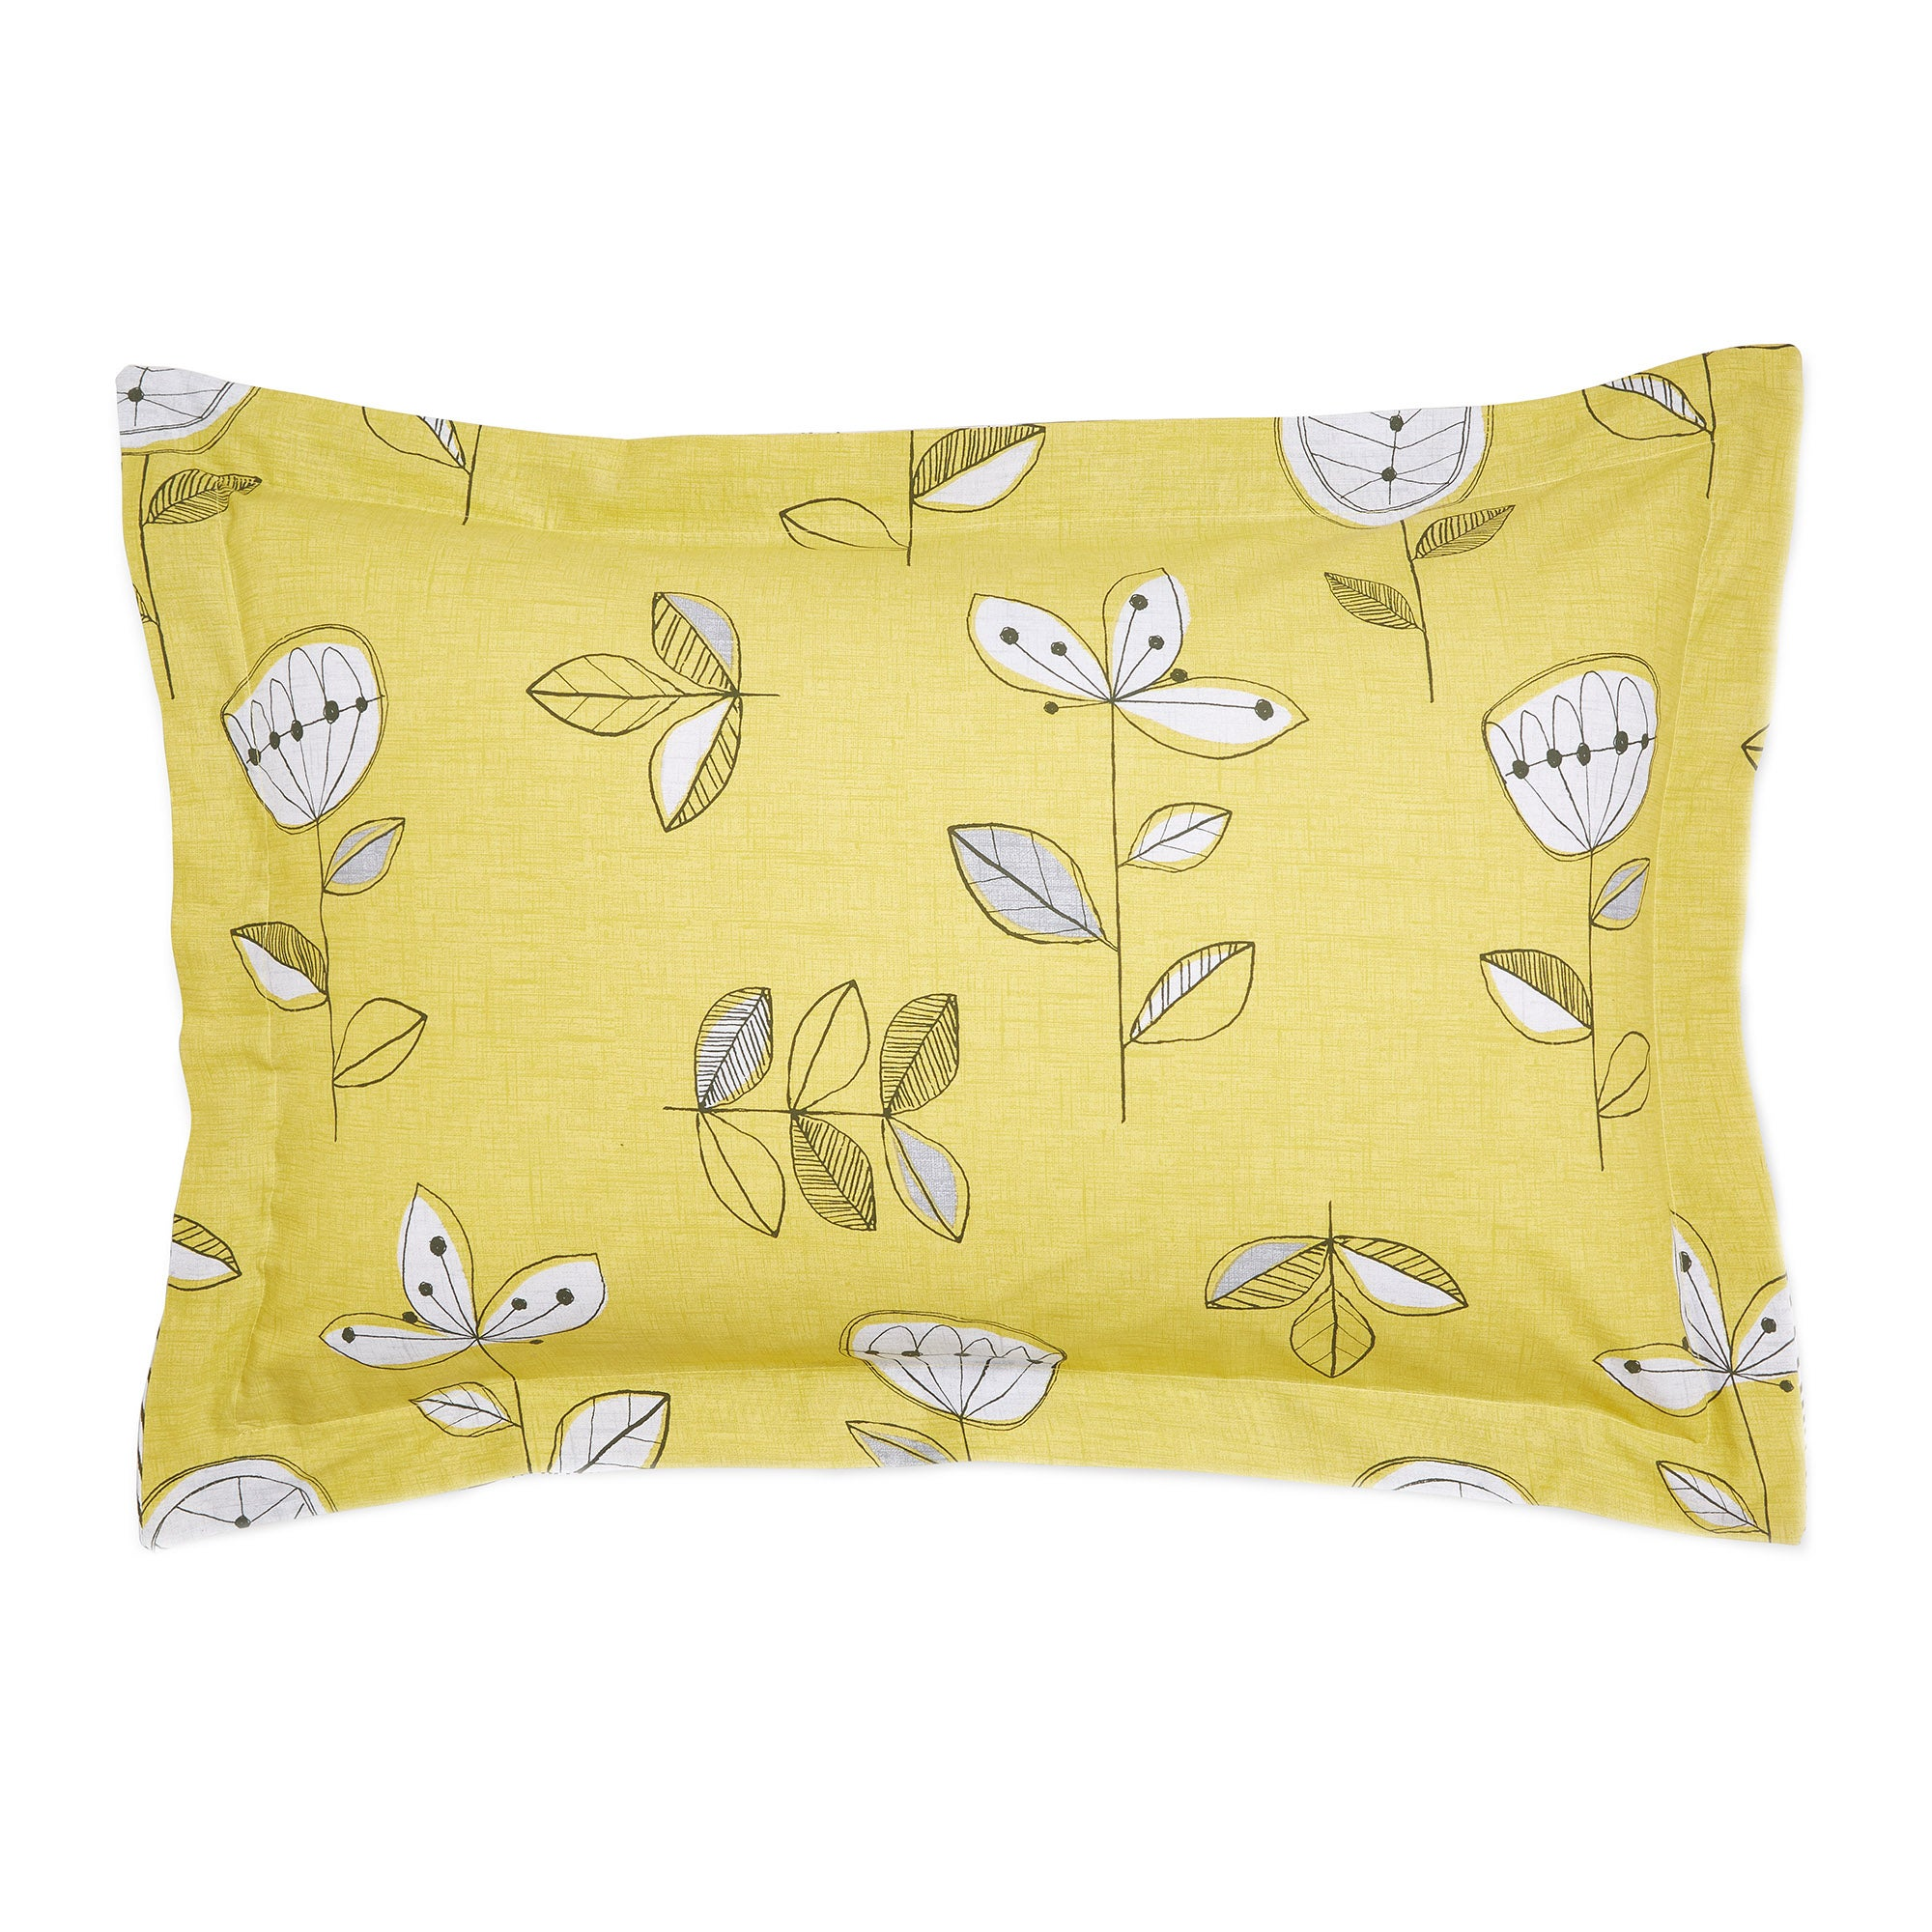 Image of Elements Sunflower Yellow Oxford Pillowcase Yellow